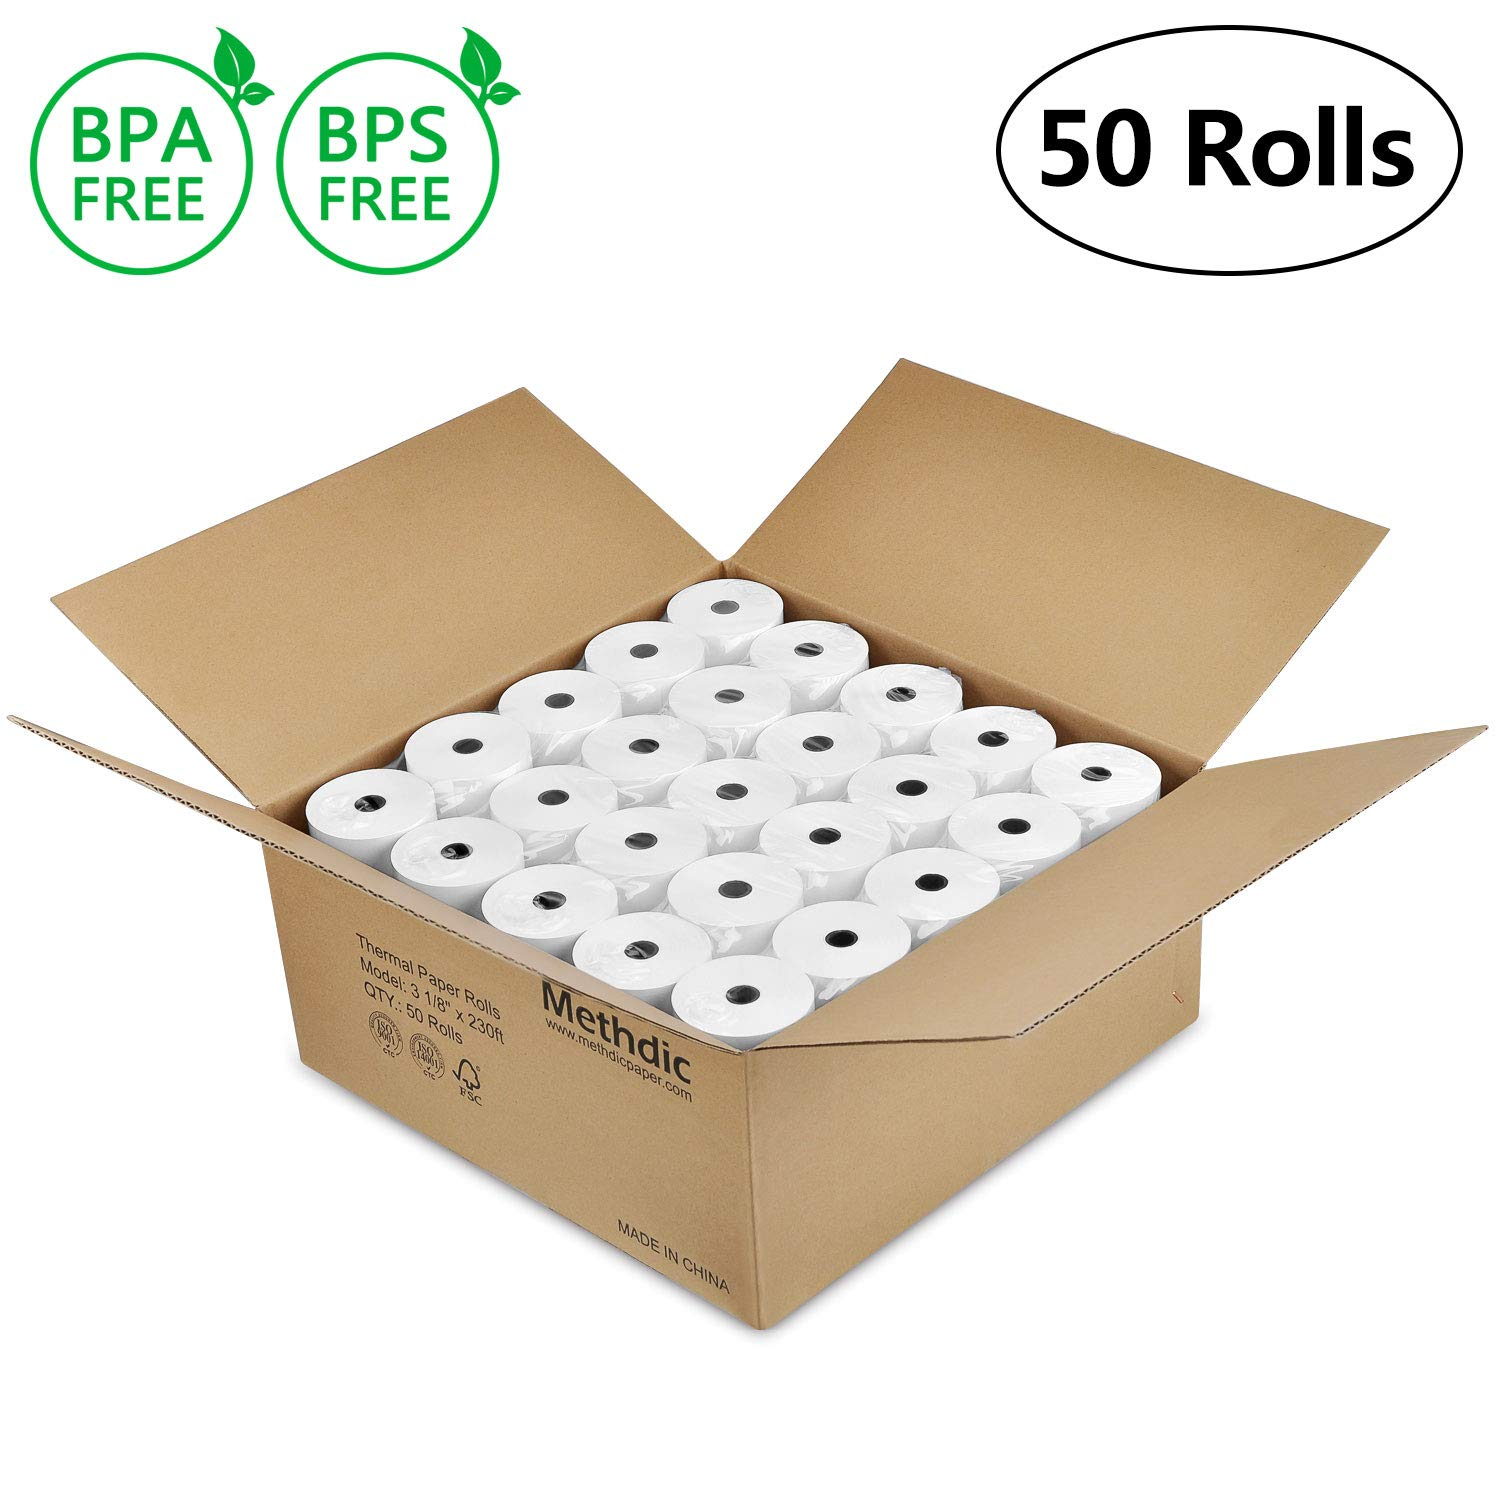 Thermal Paper Roll 3 1 8' x 230(3 1/8 inch x 230 ft) BPA BPS free Thermal Receipt Paper Roll 50 Pack by Methdic by Methdic